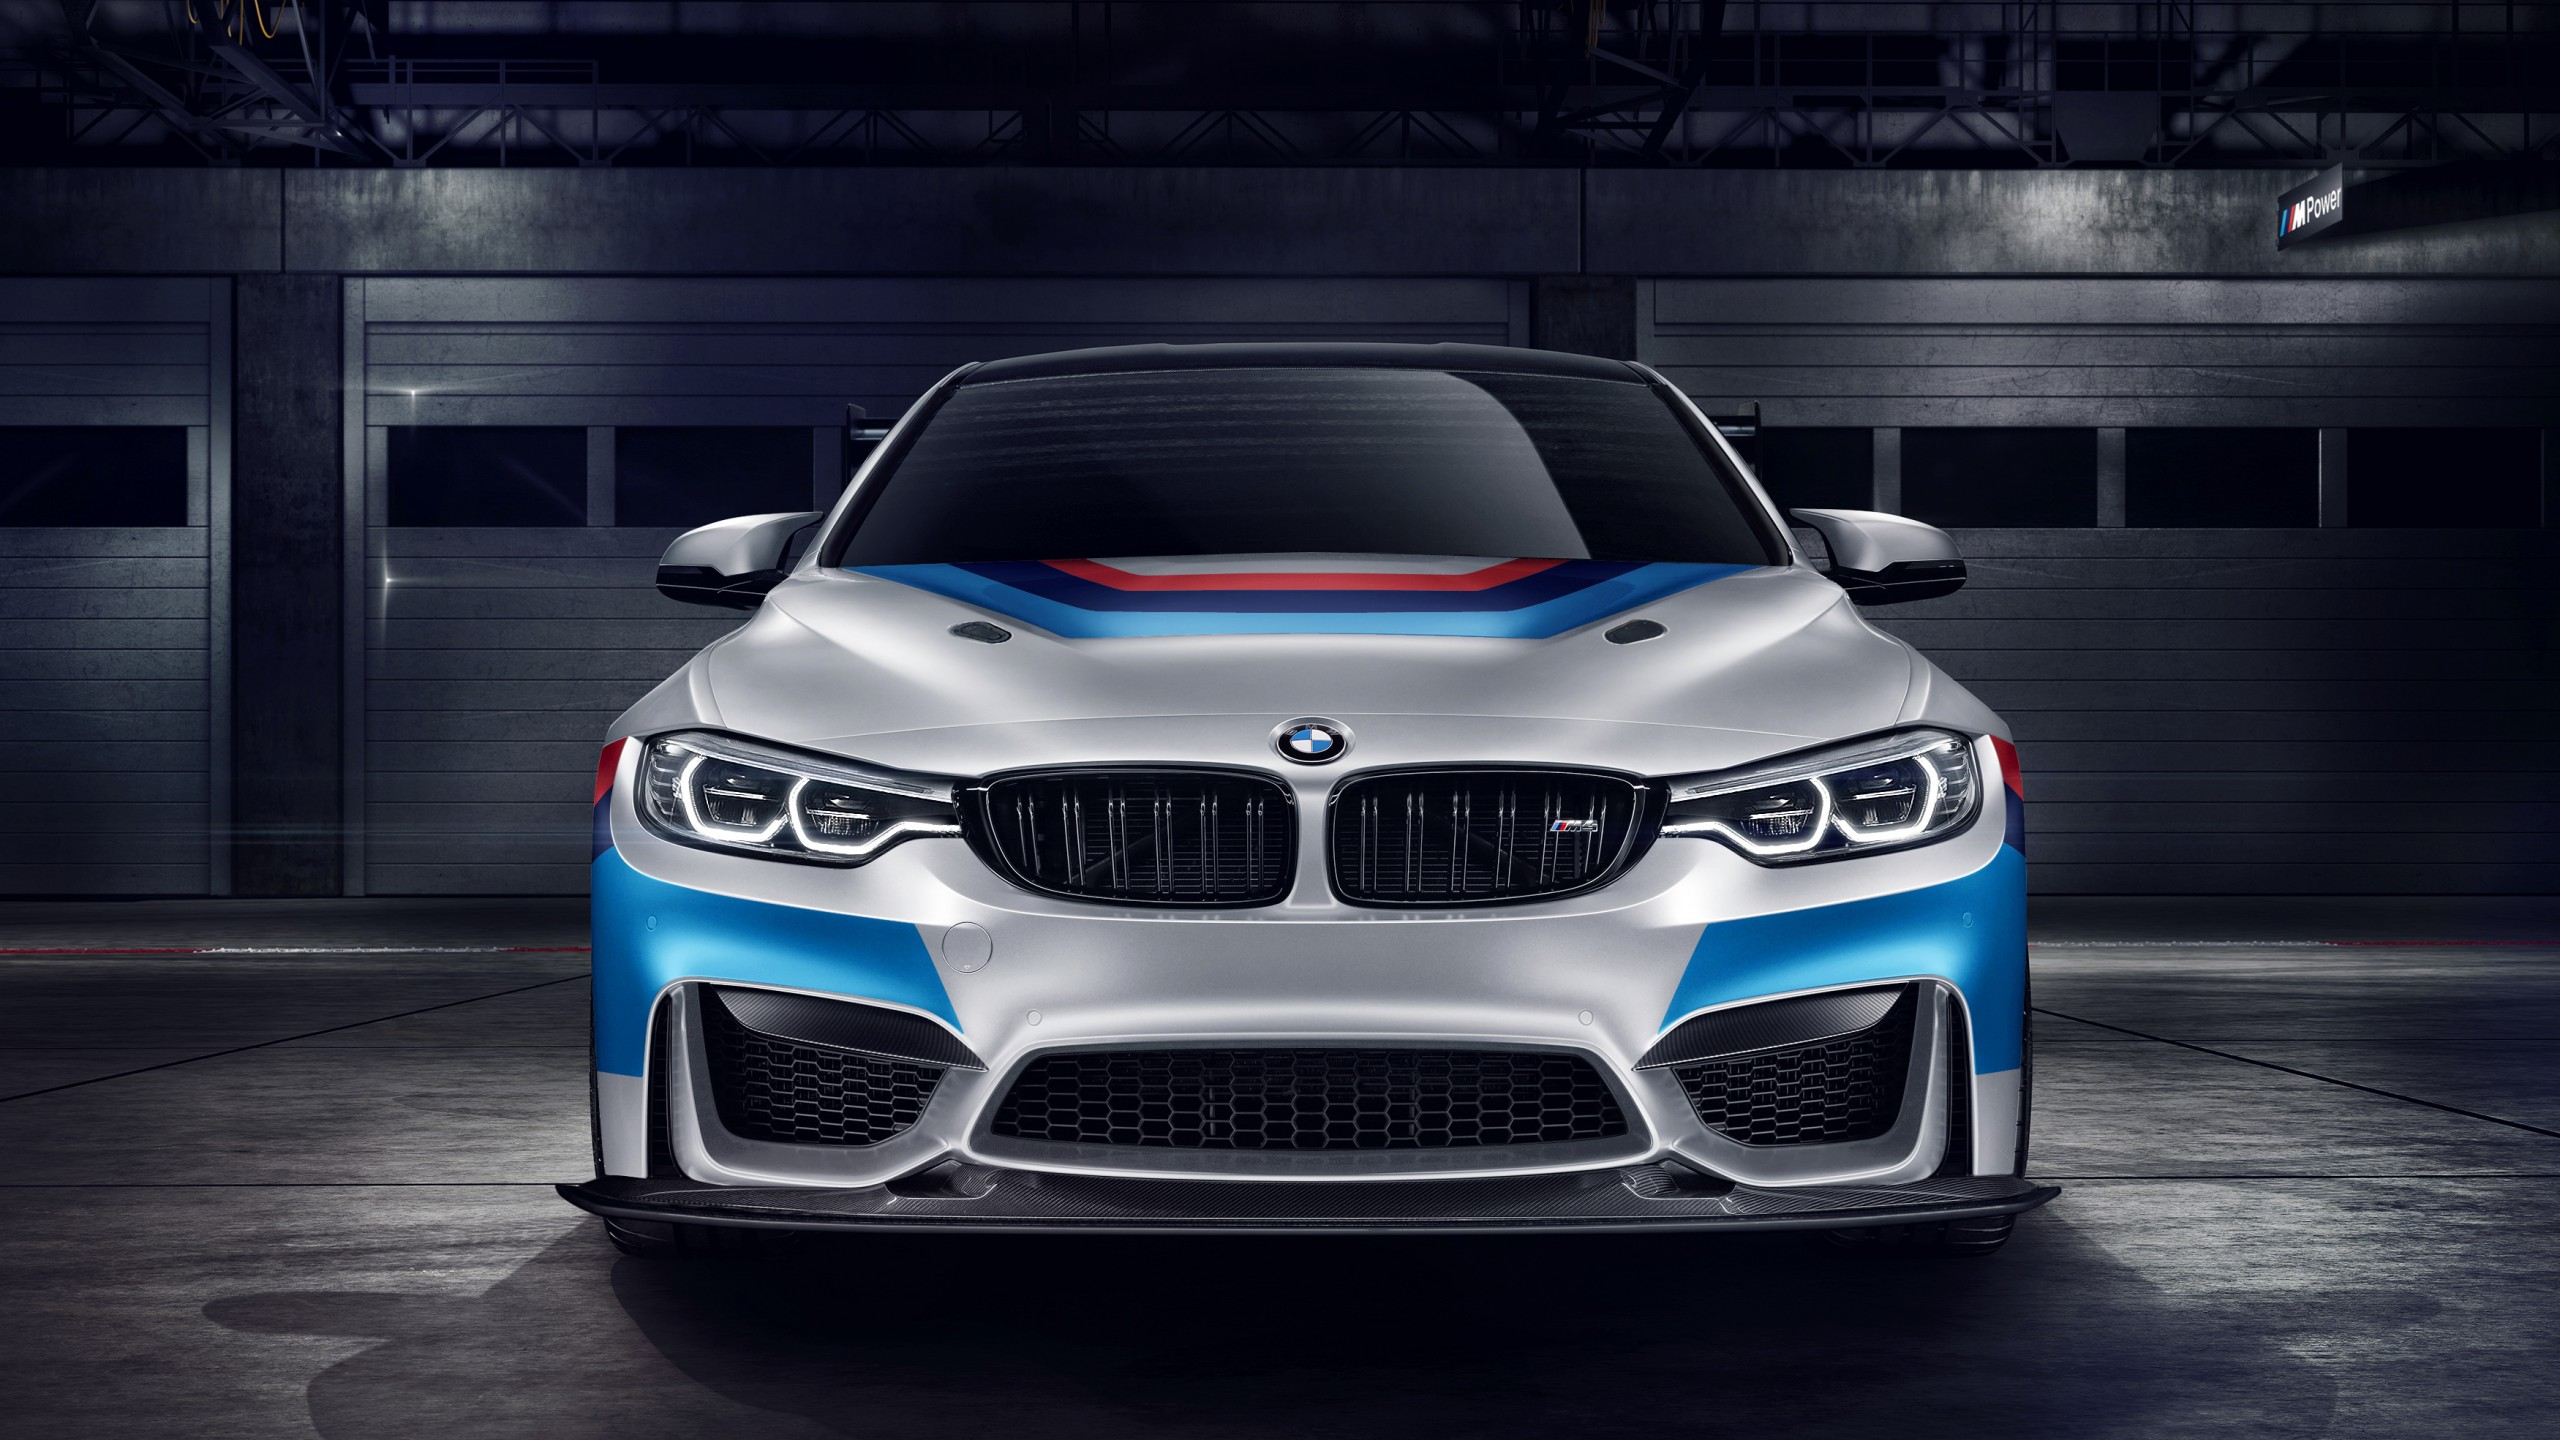 Bmw M4 Gt4 Competition Package 4k Wallpaper Hd Car